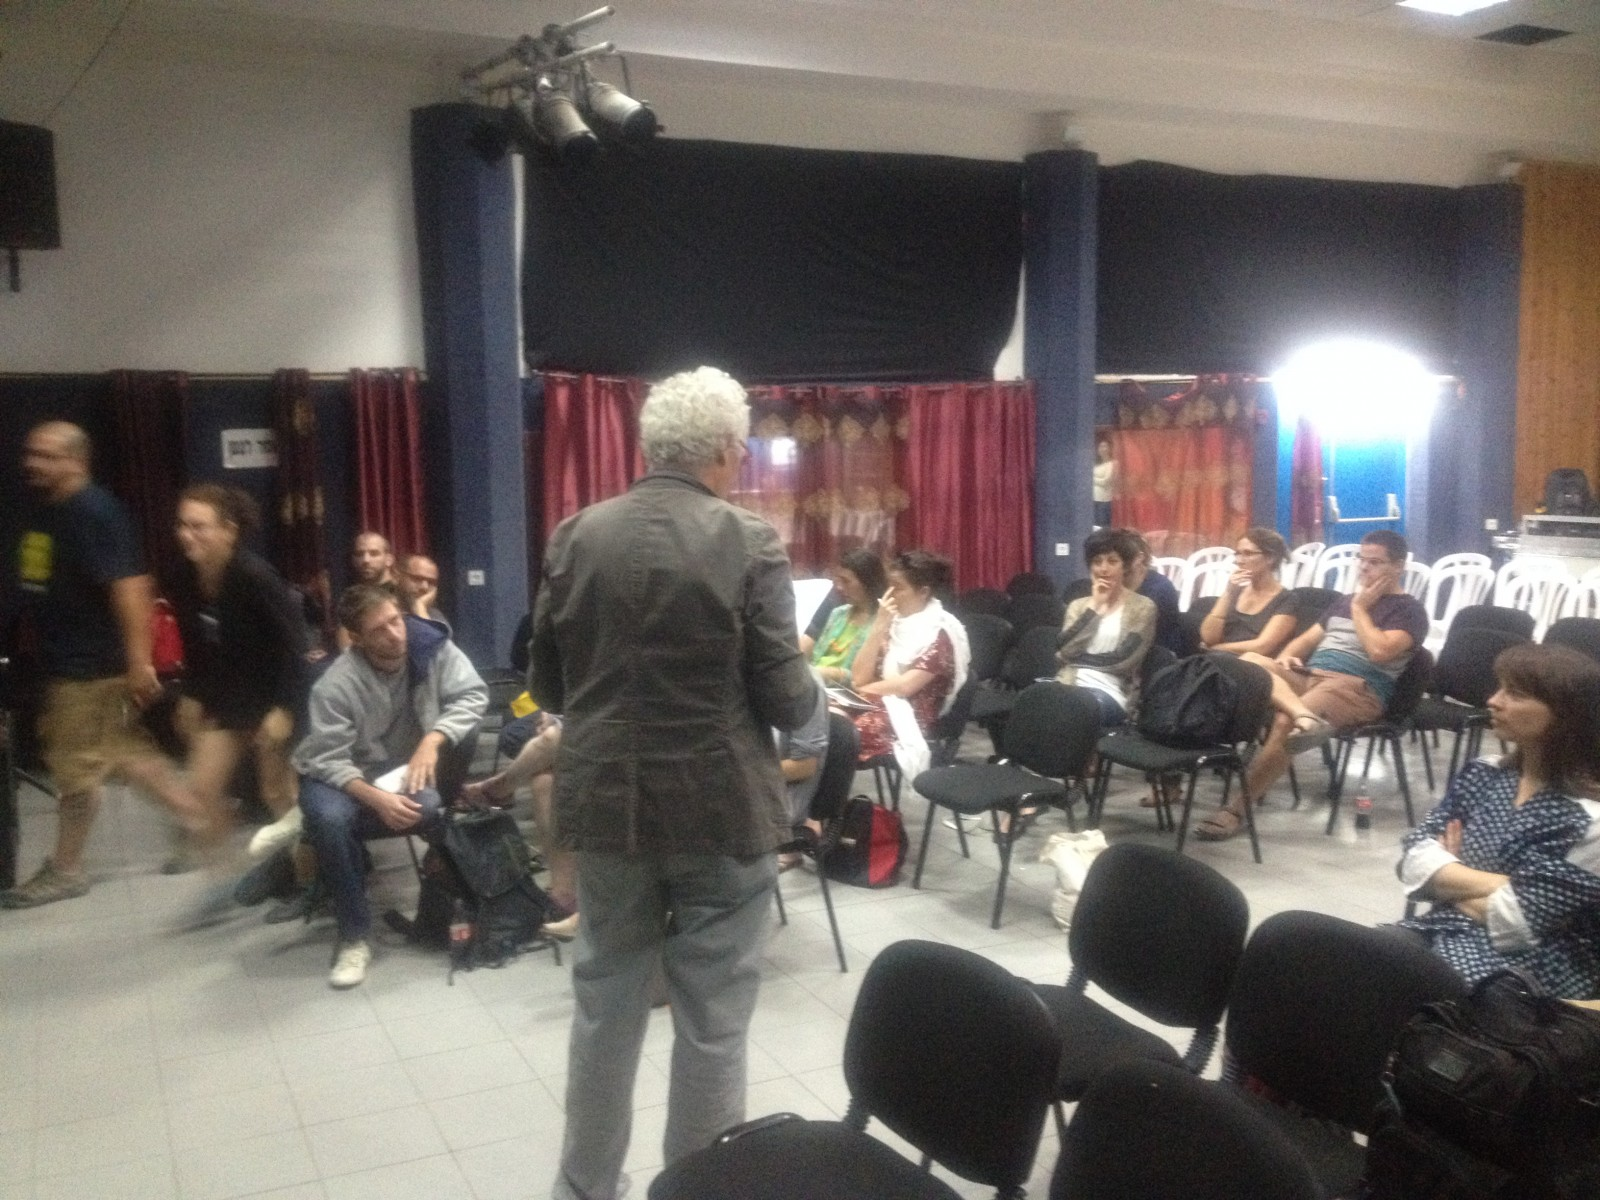 Pitch presentation moderated by italian producer Stefano Tealdi